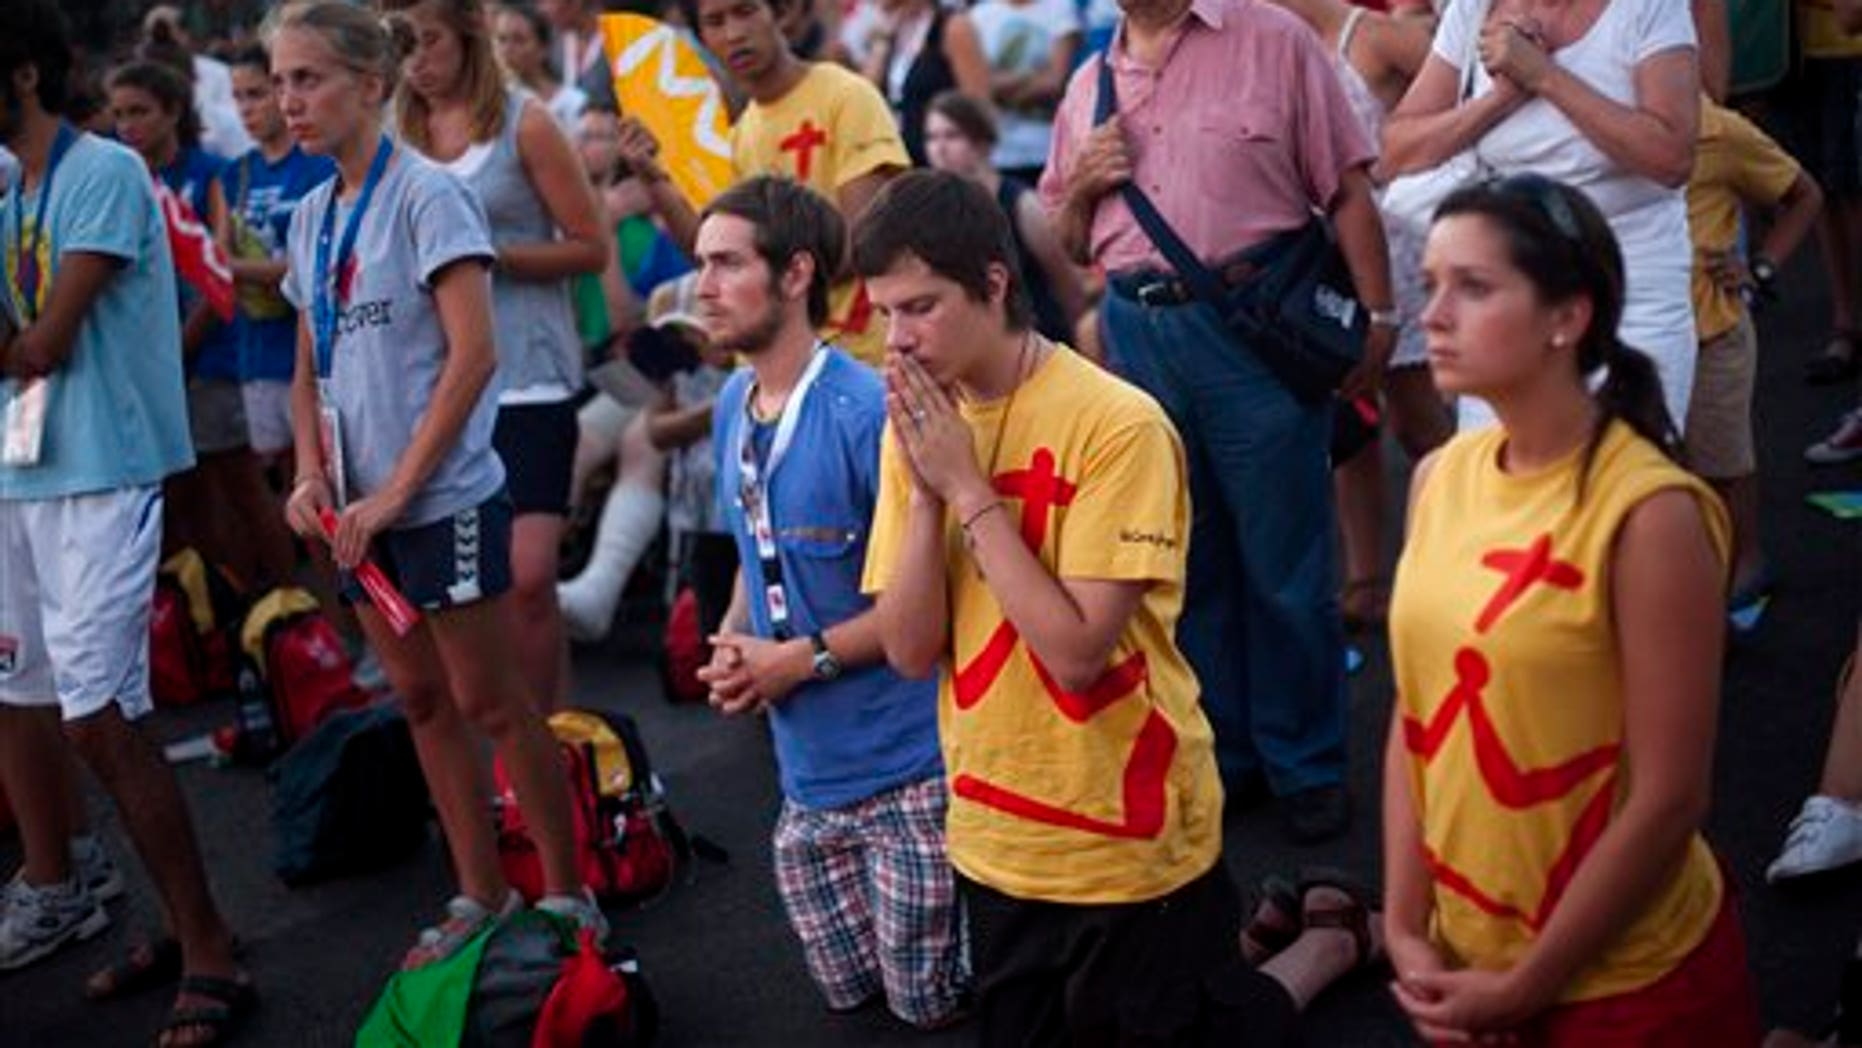 Aug. 16: Pilgrims pray at the street during a mass at the Cibeles square, ahead to the visit of Pope Benedict XVI in Madrid next Aug. 18- 21.